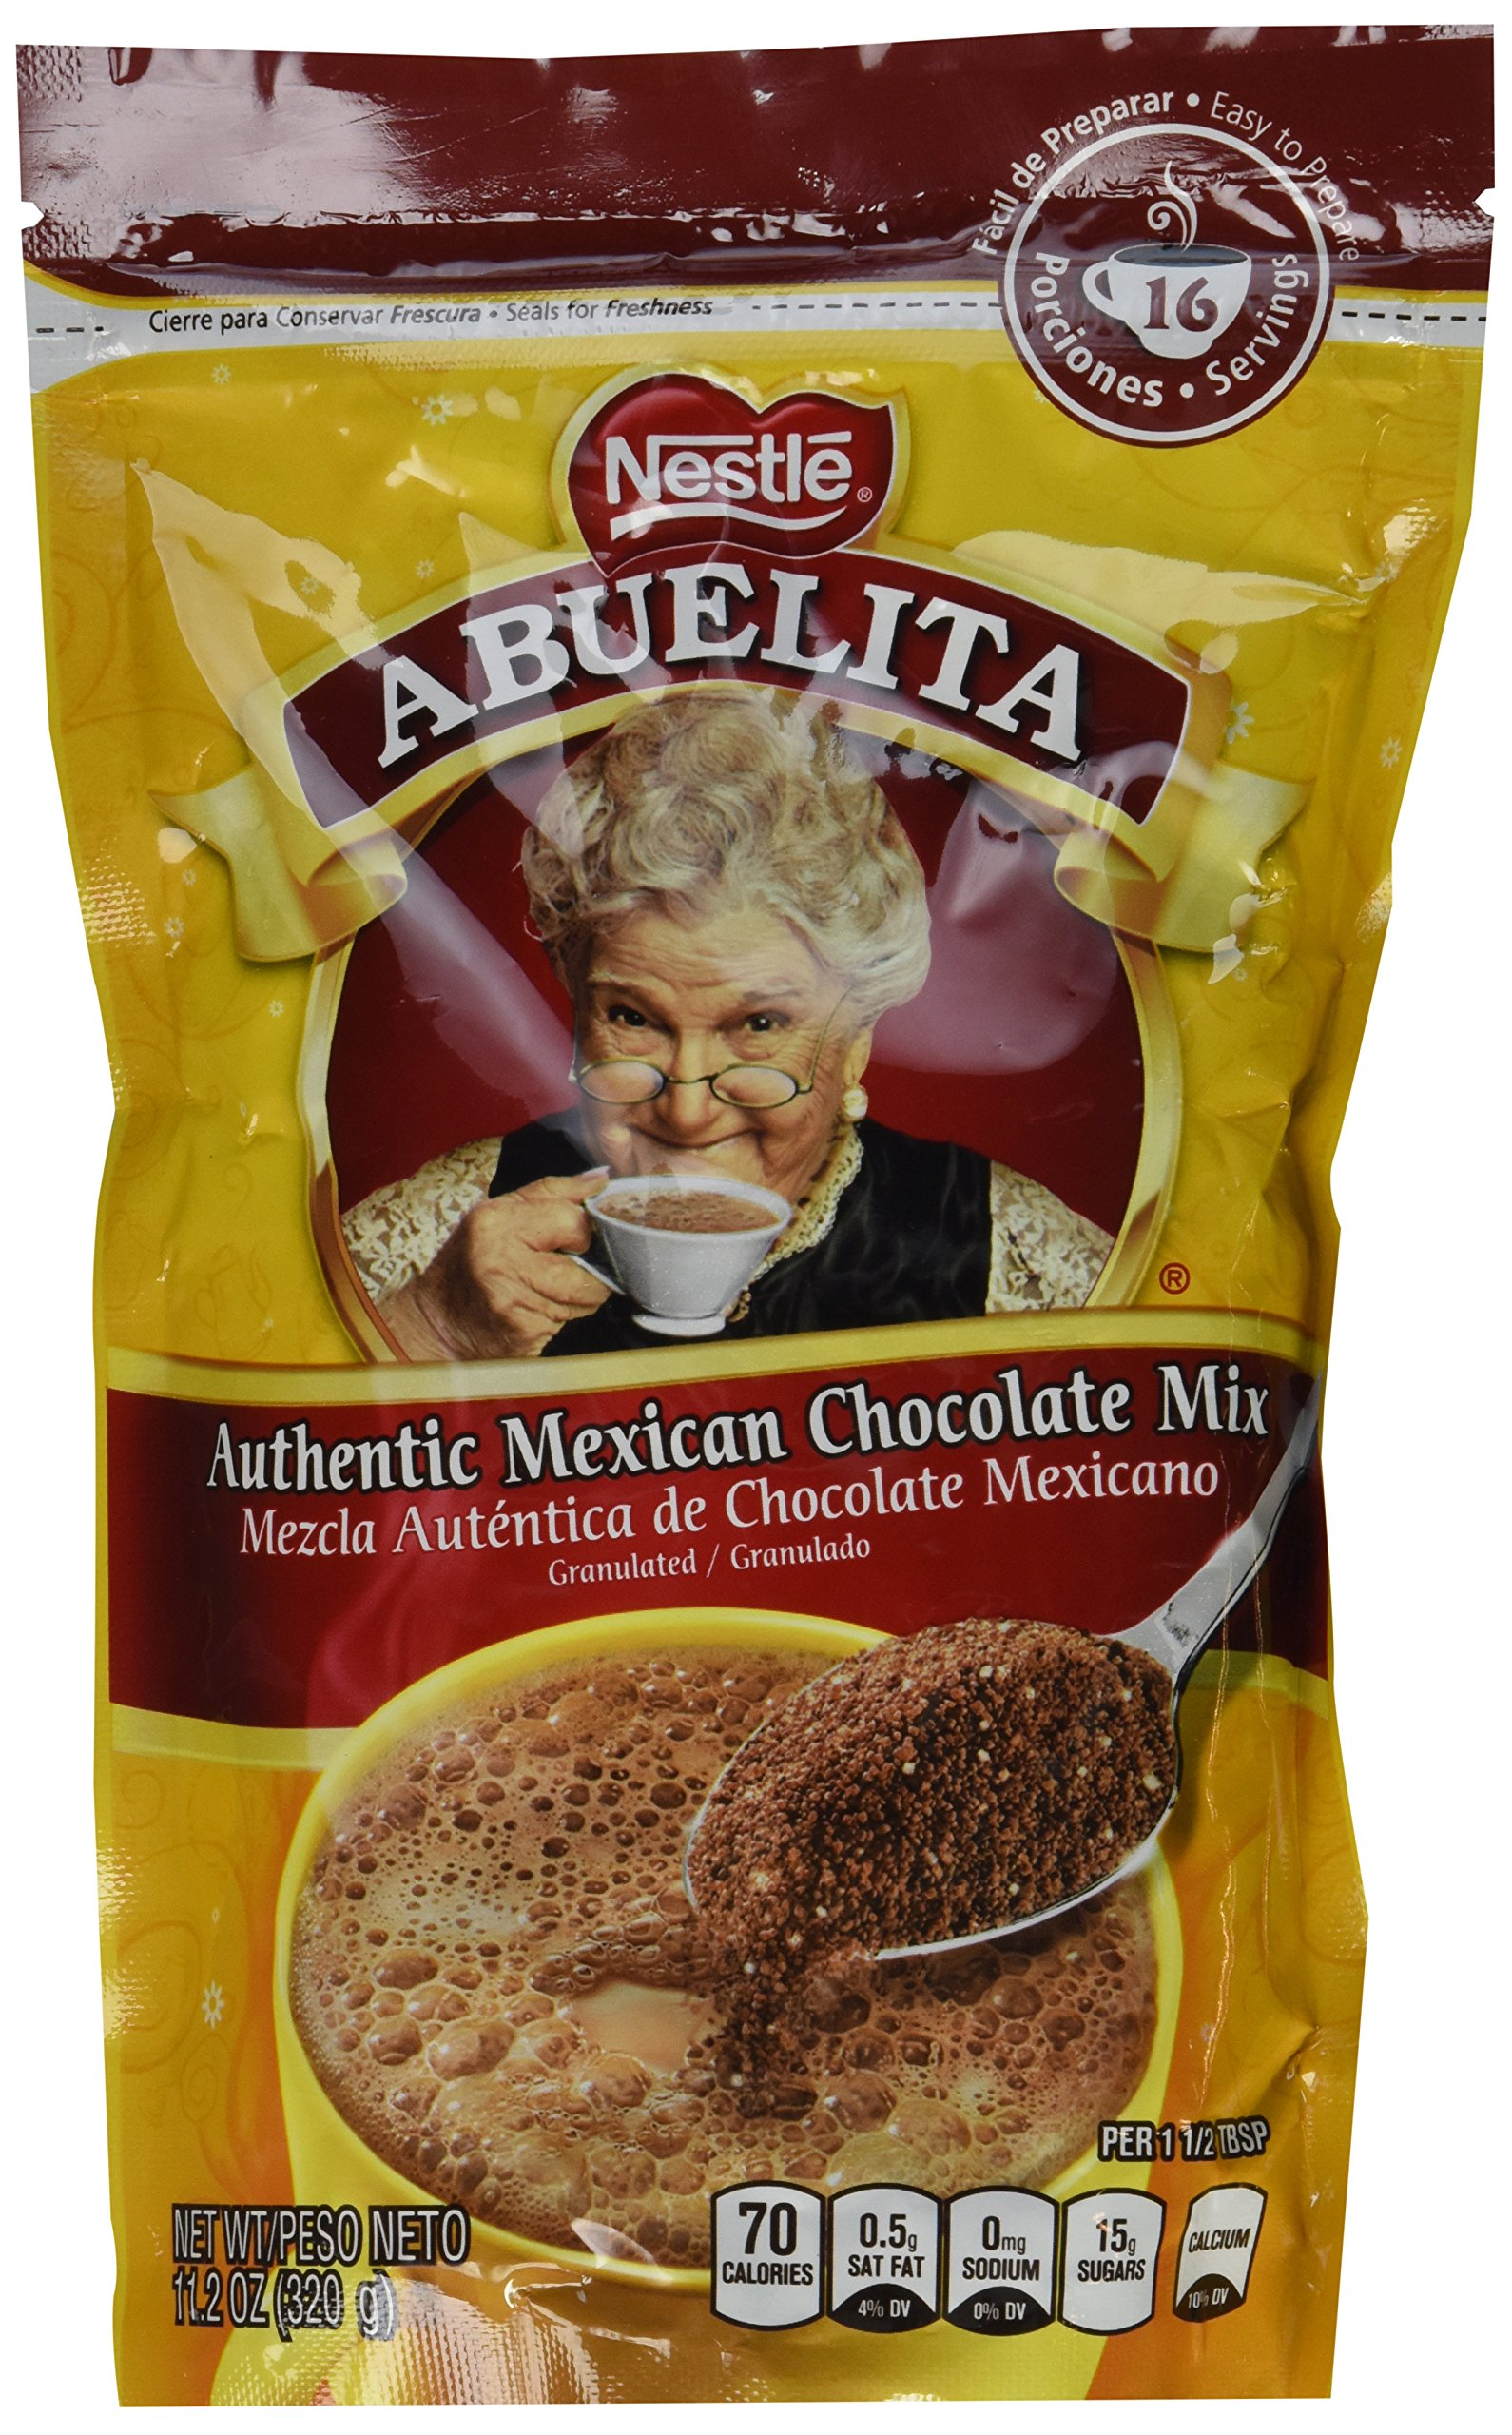 Nestle, Abuelita, Authentic Mexican Chocolate Drink Mix, Chocolate Granules, 11.2oz Pouch (Pack of 4)